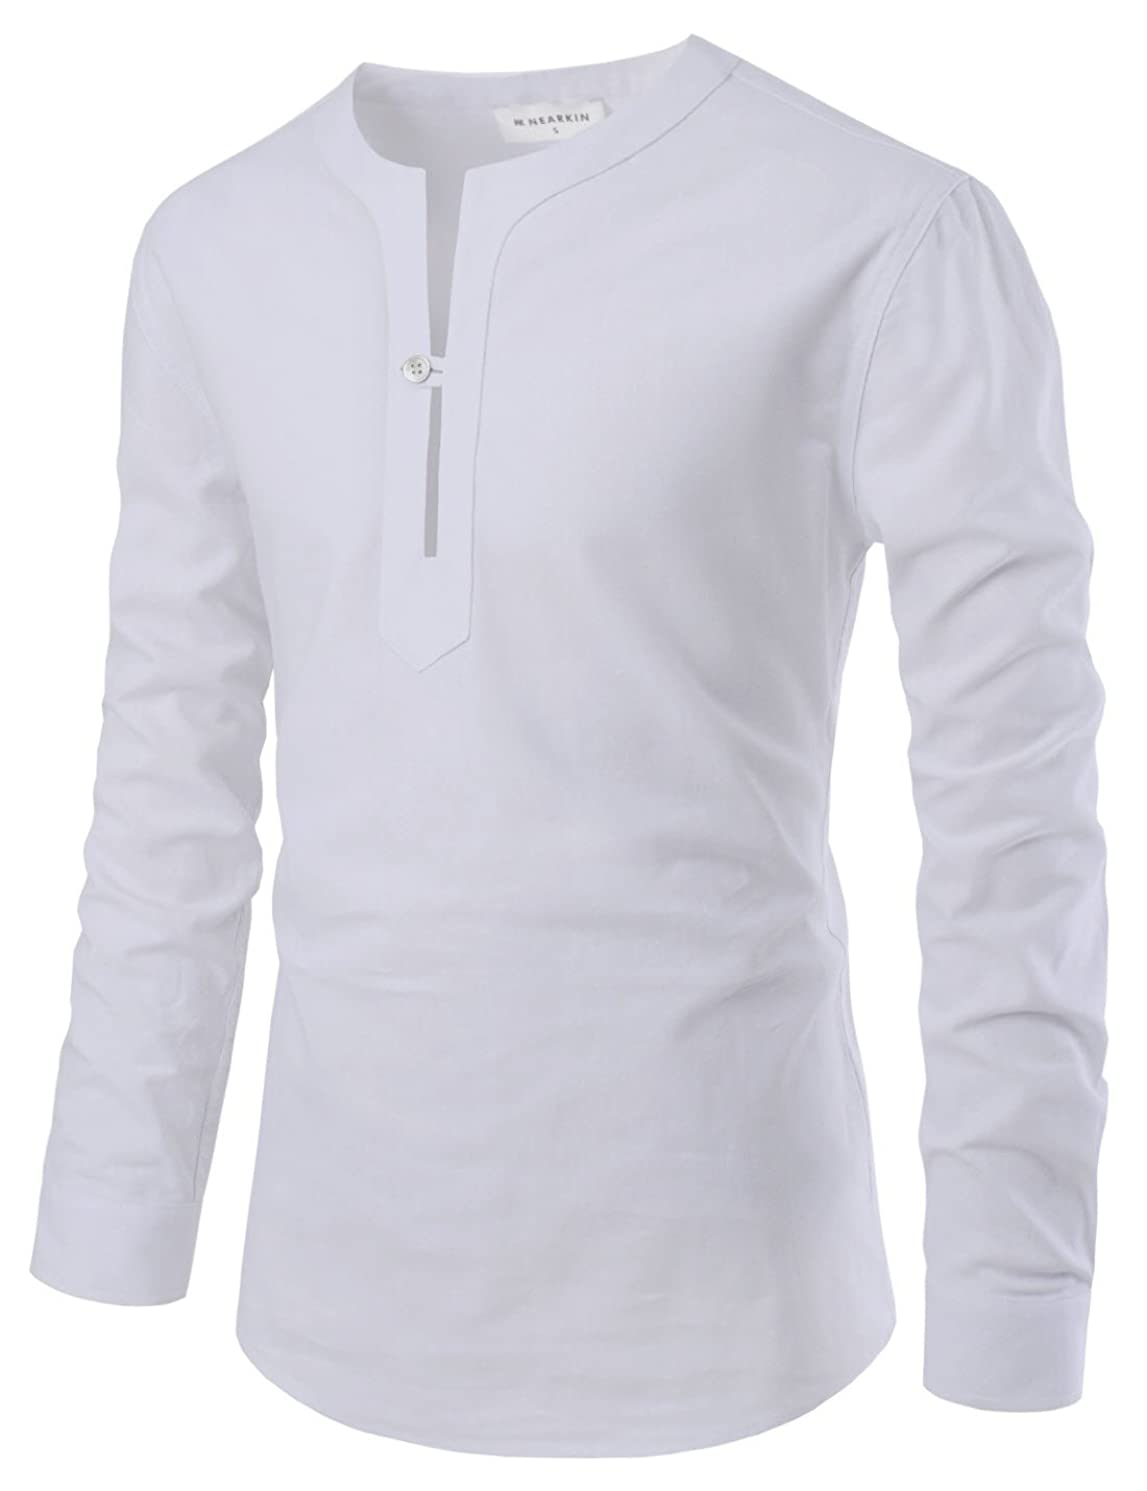 NEARKIN Mens Mandarin Collar Long Sleeve Button Down Cotton Shirts